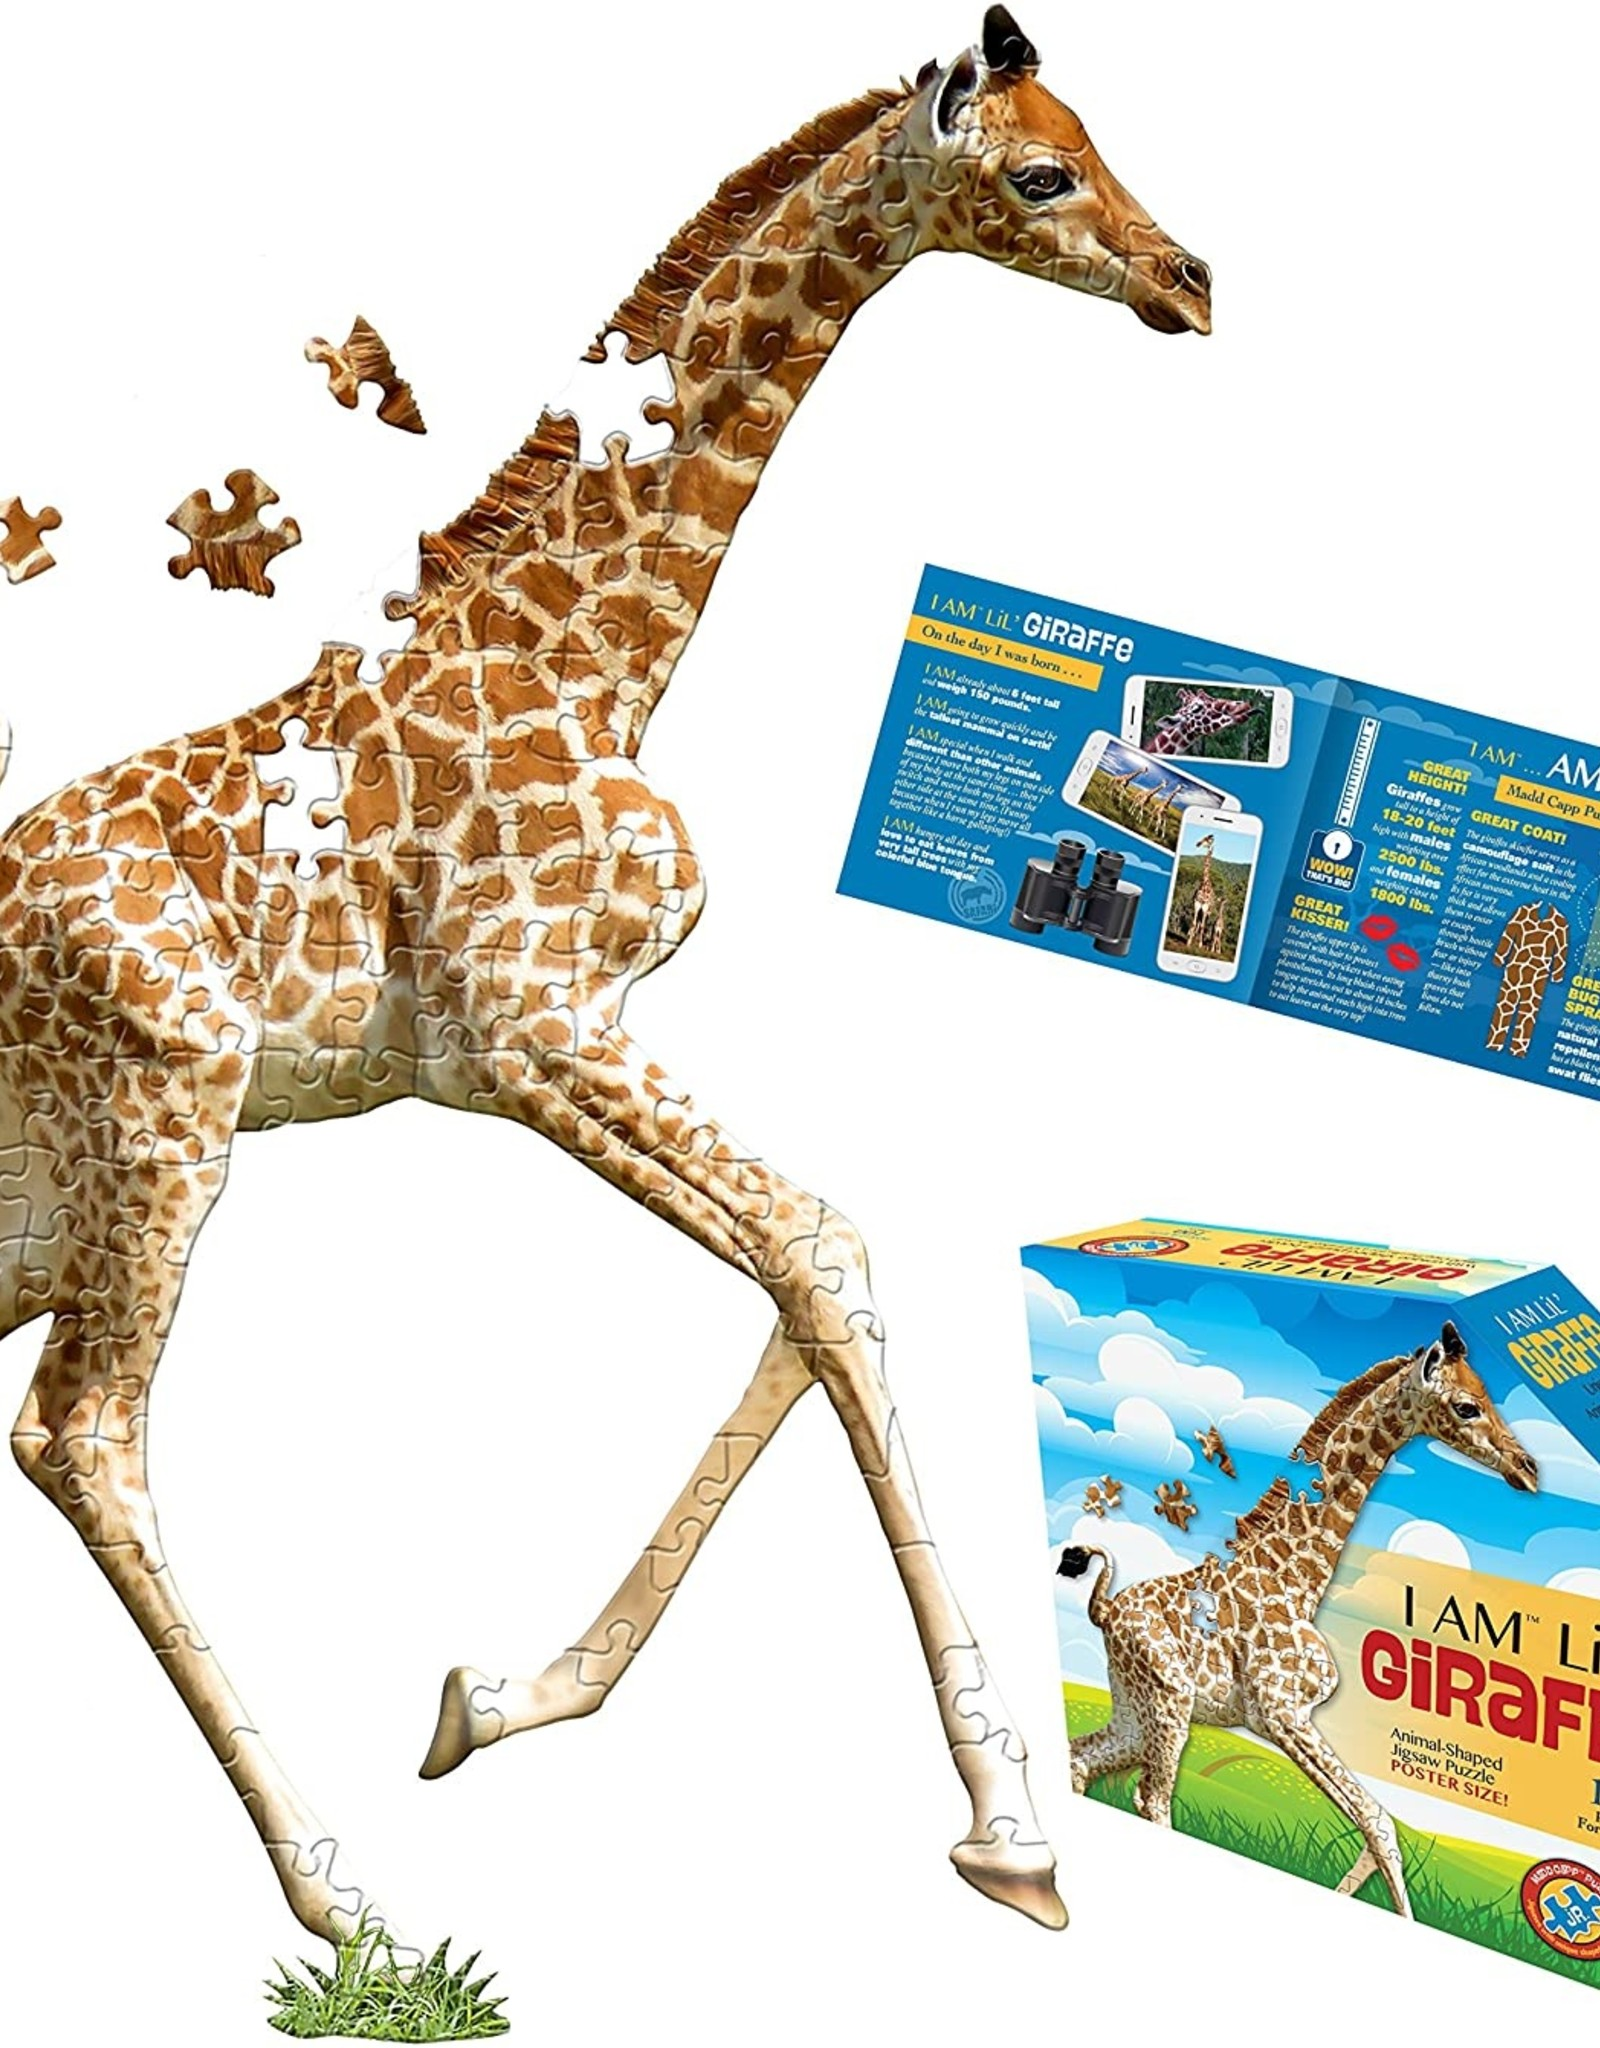 madd capp puzzles I am Lil' Giraffe puzzle - 100 pieces